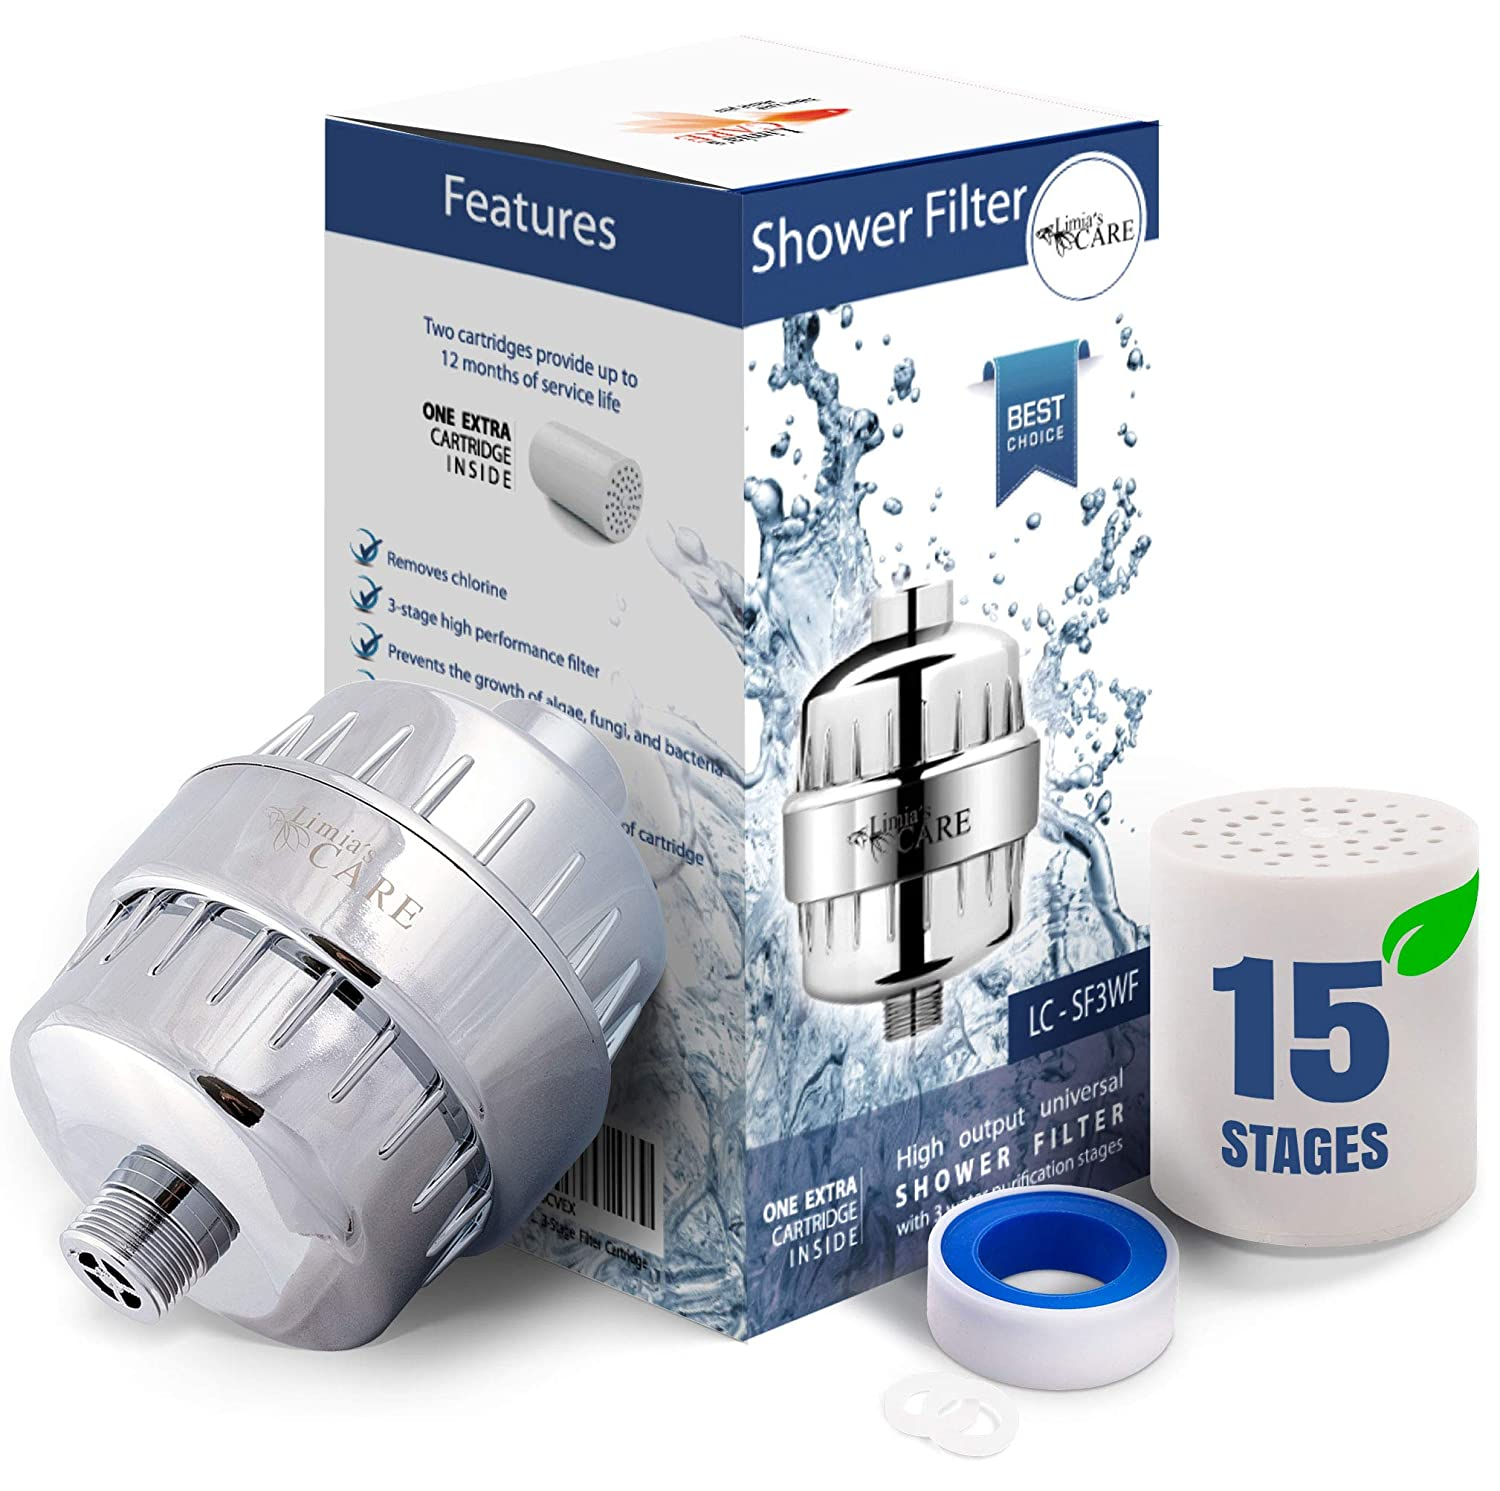 3. Limia's Care 15-Stage Shower Filter